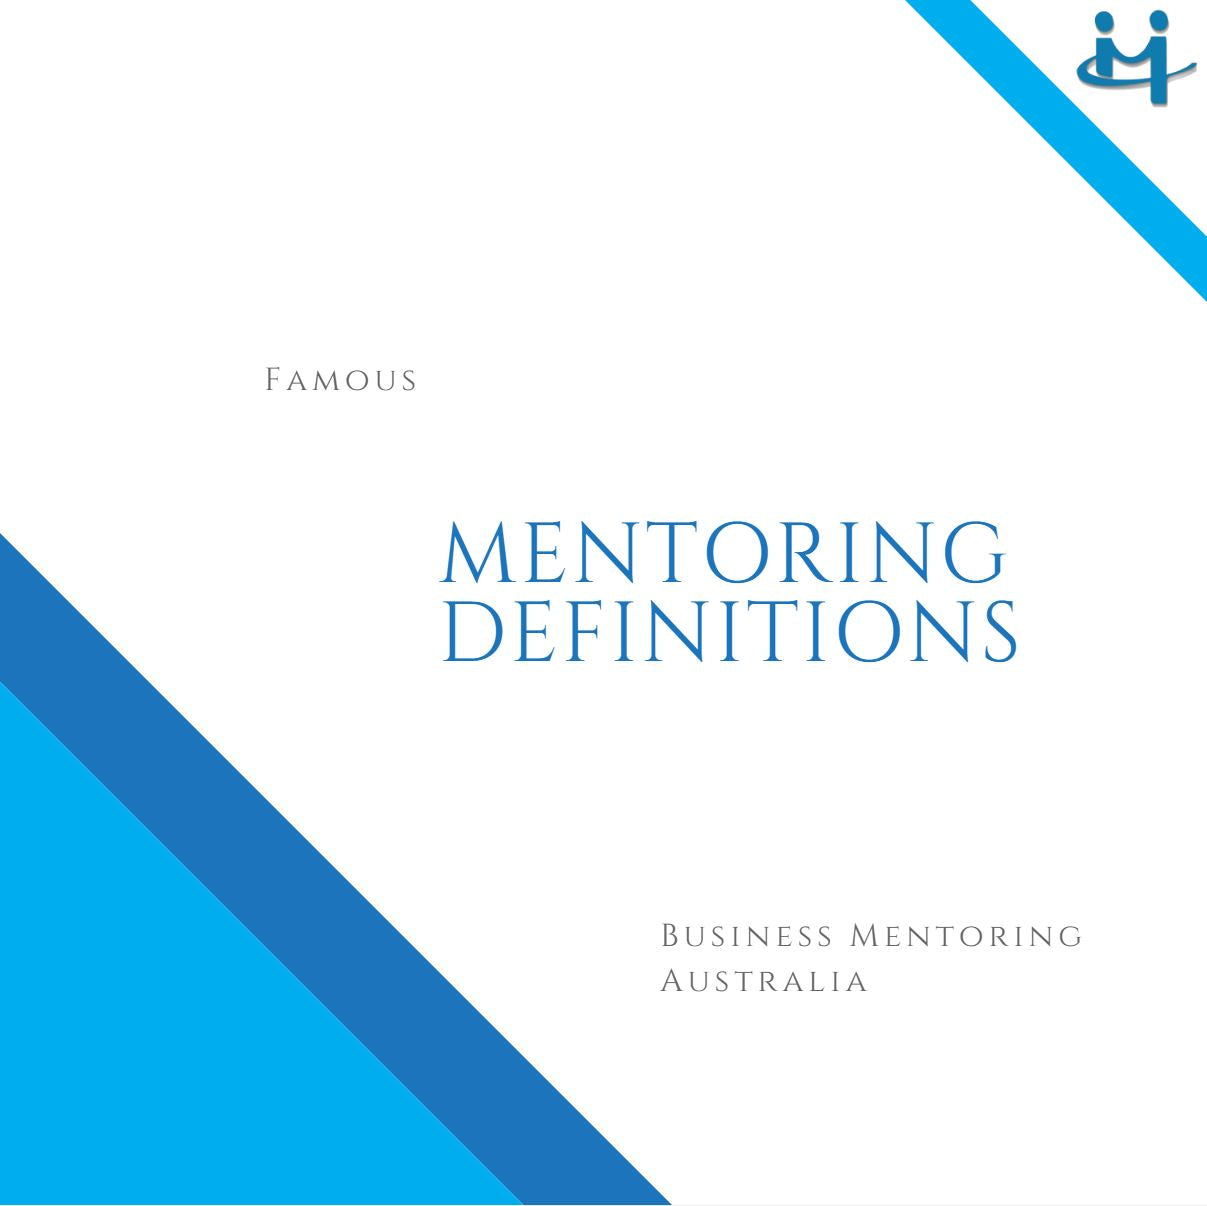 Mentoring Definitions